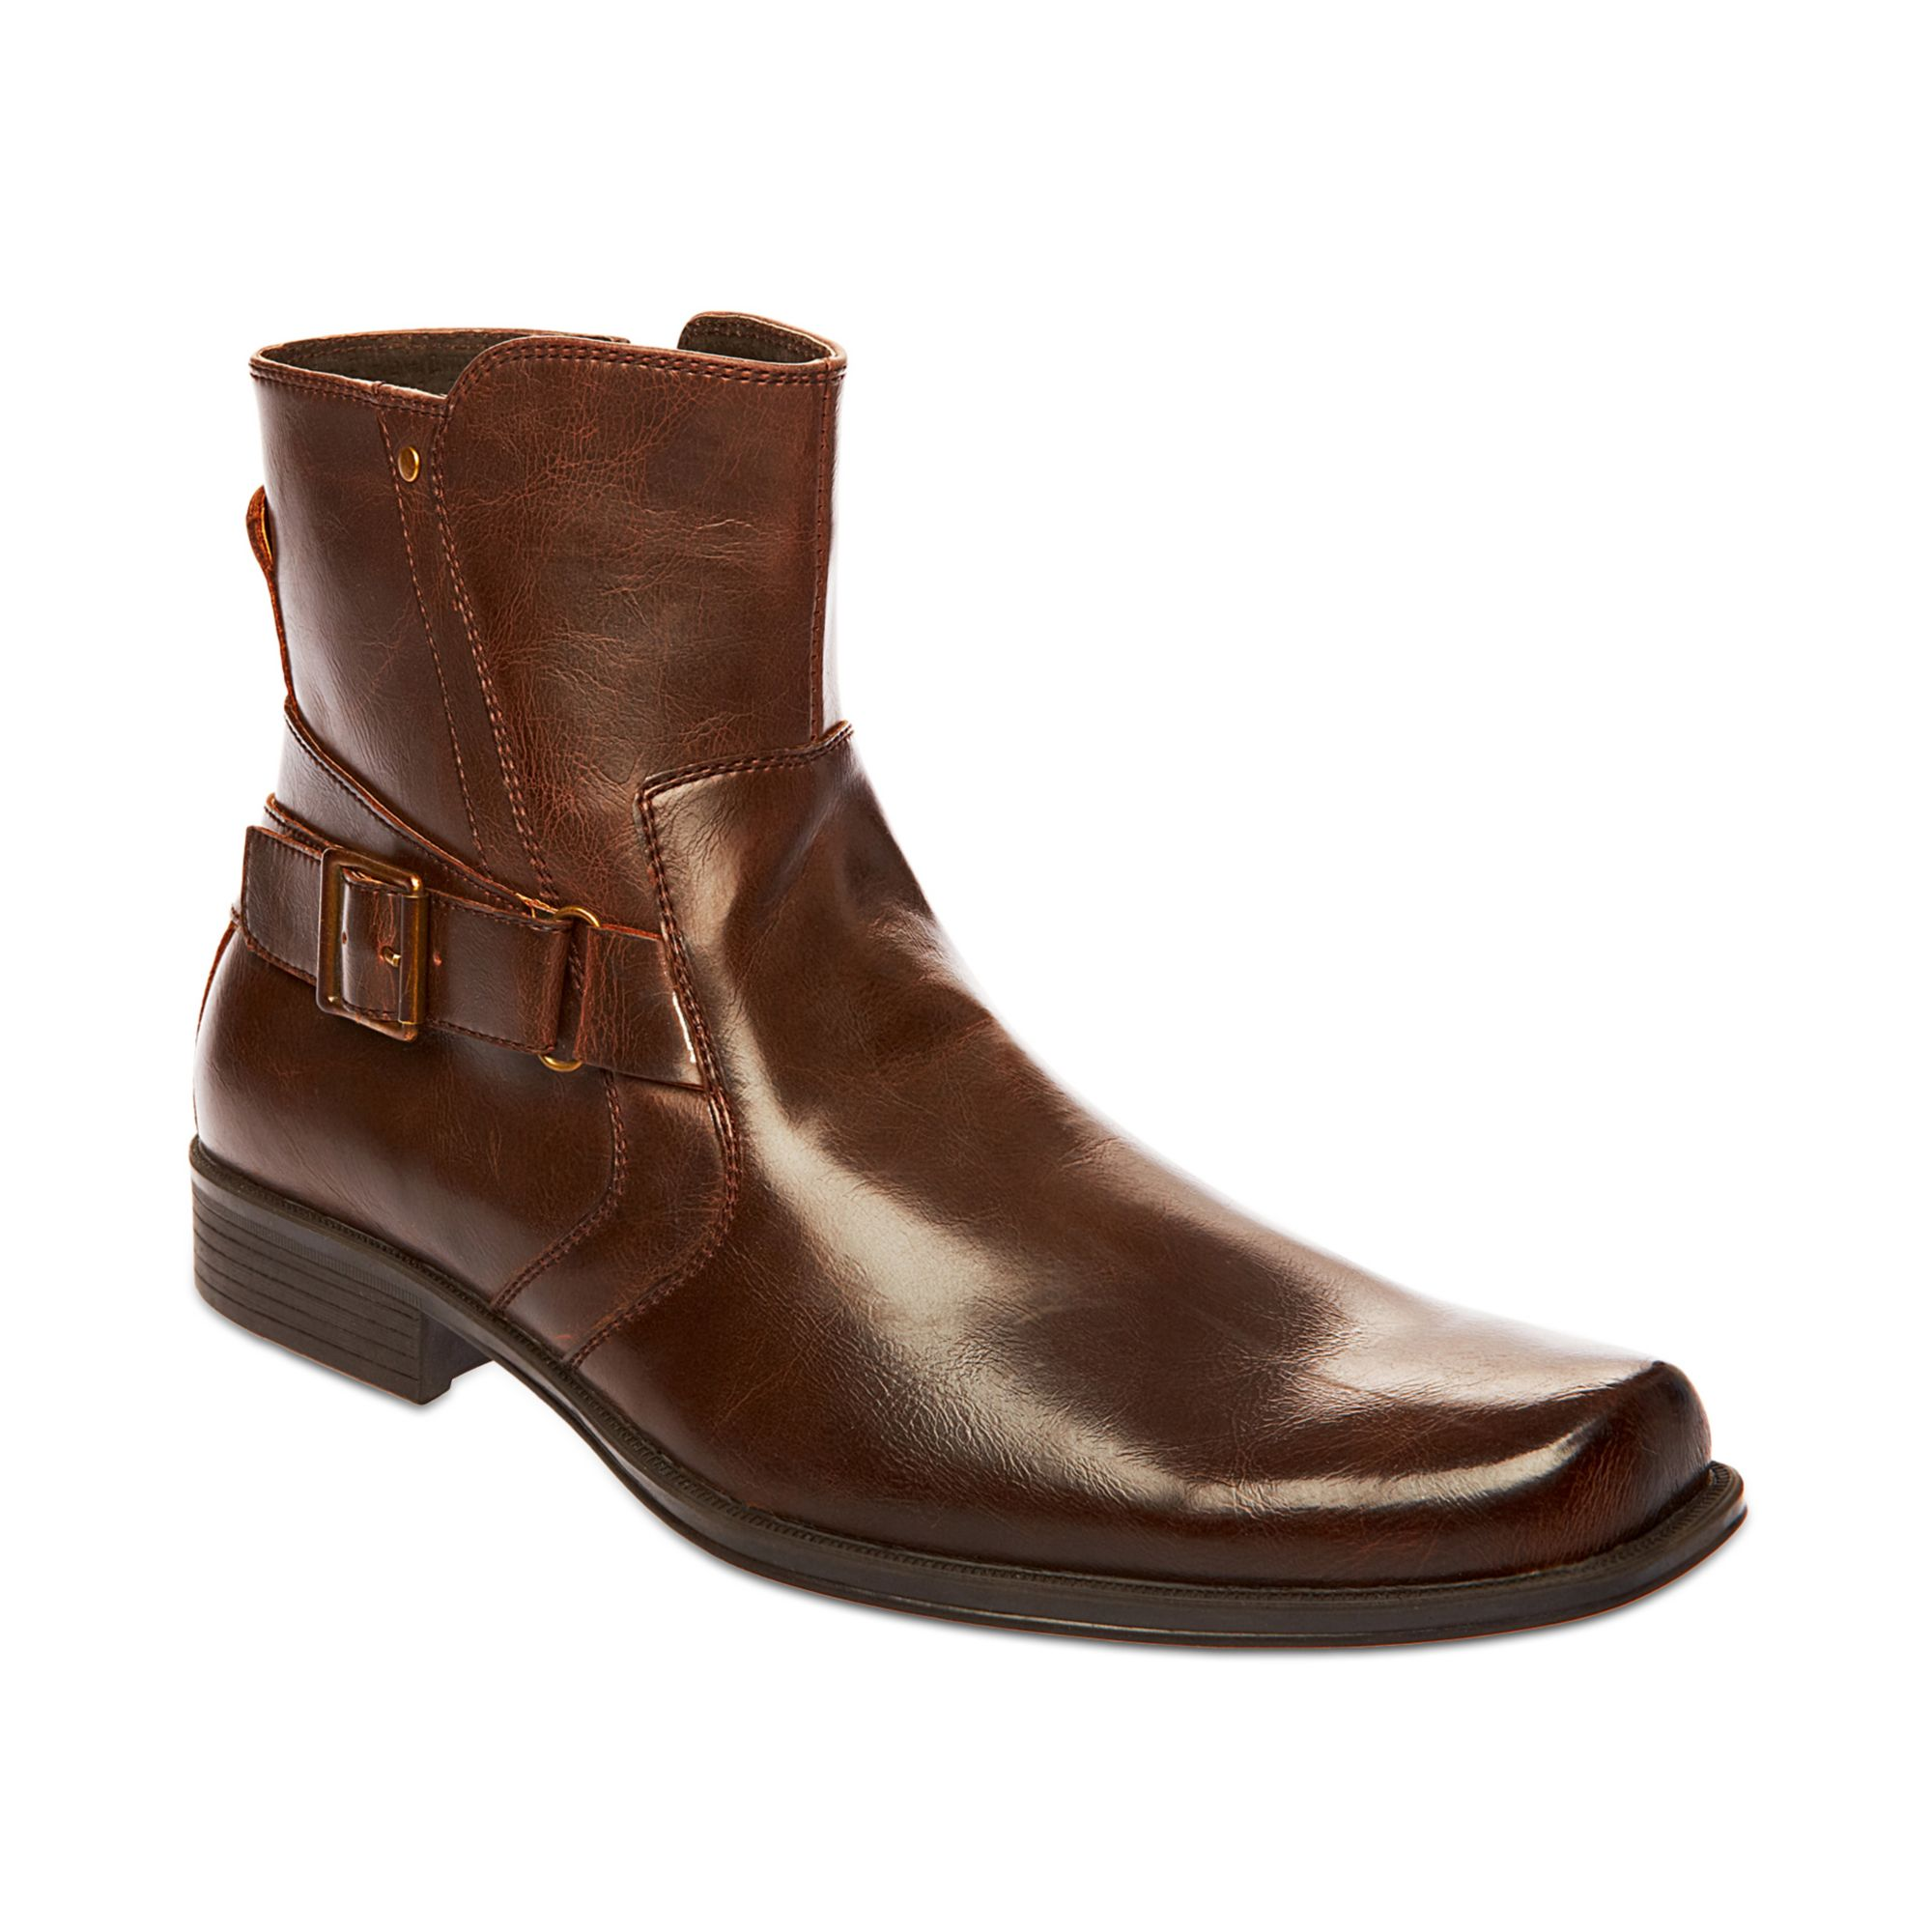 Steve Madden Madden Mens Shoes Boost Boots in Brown for ...